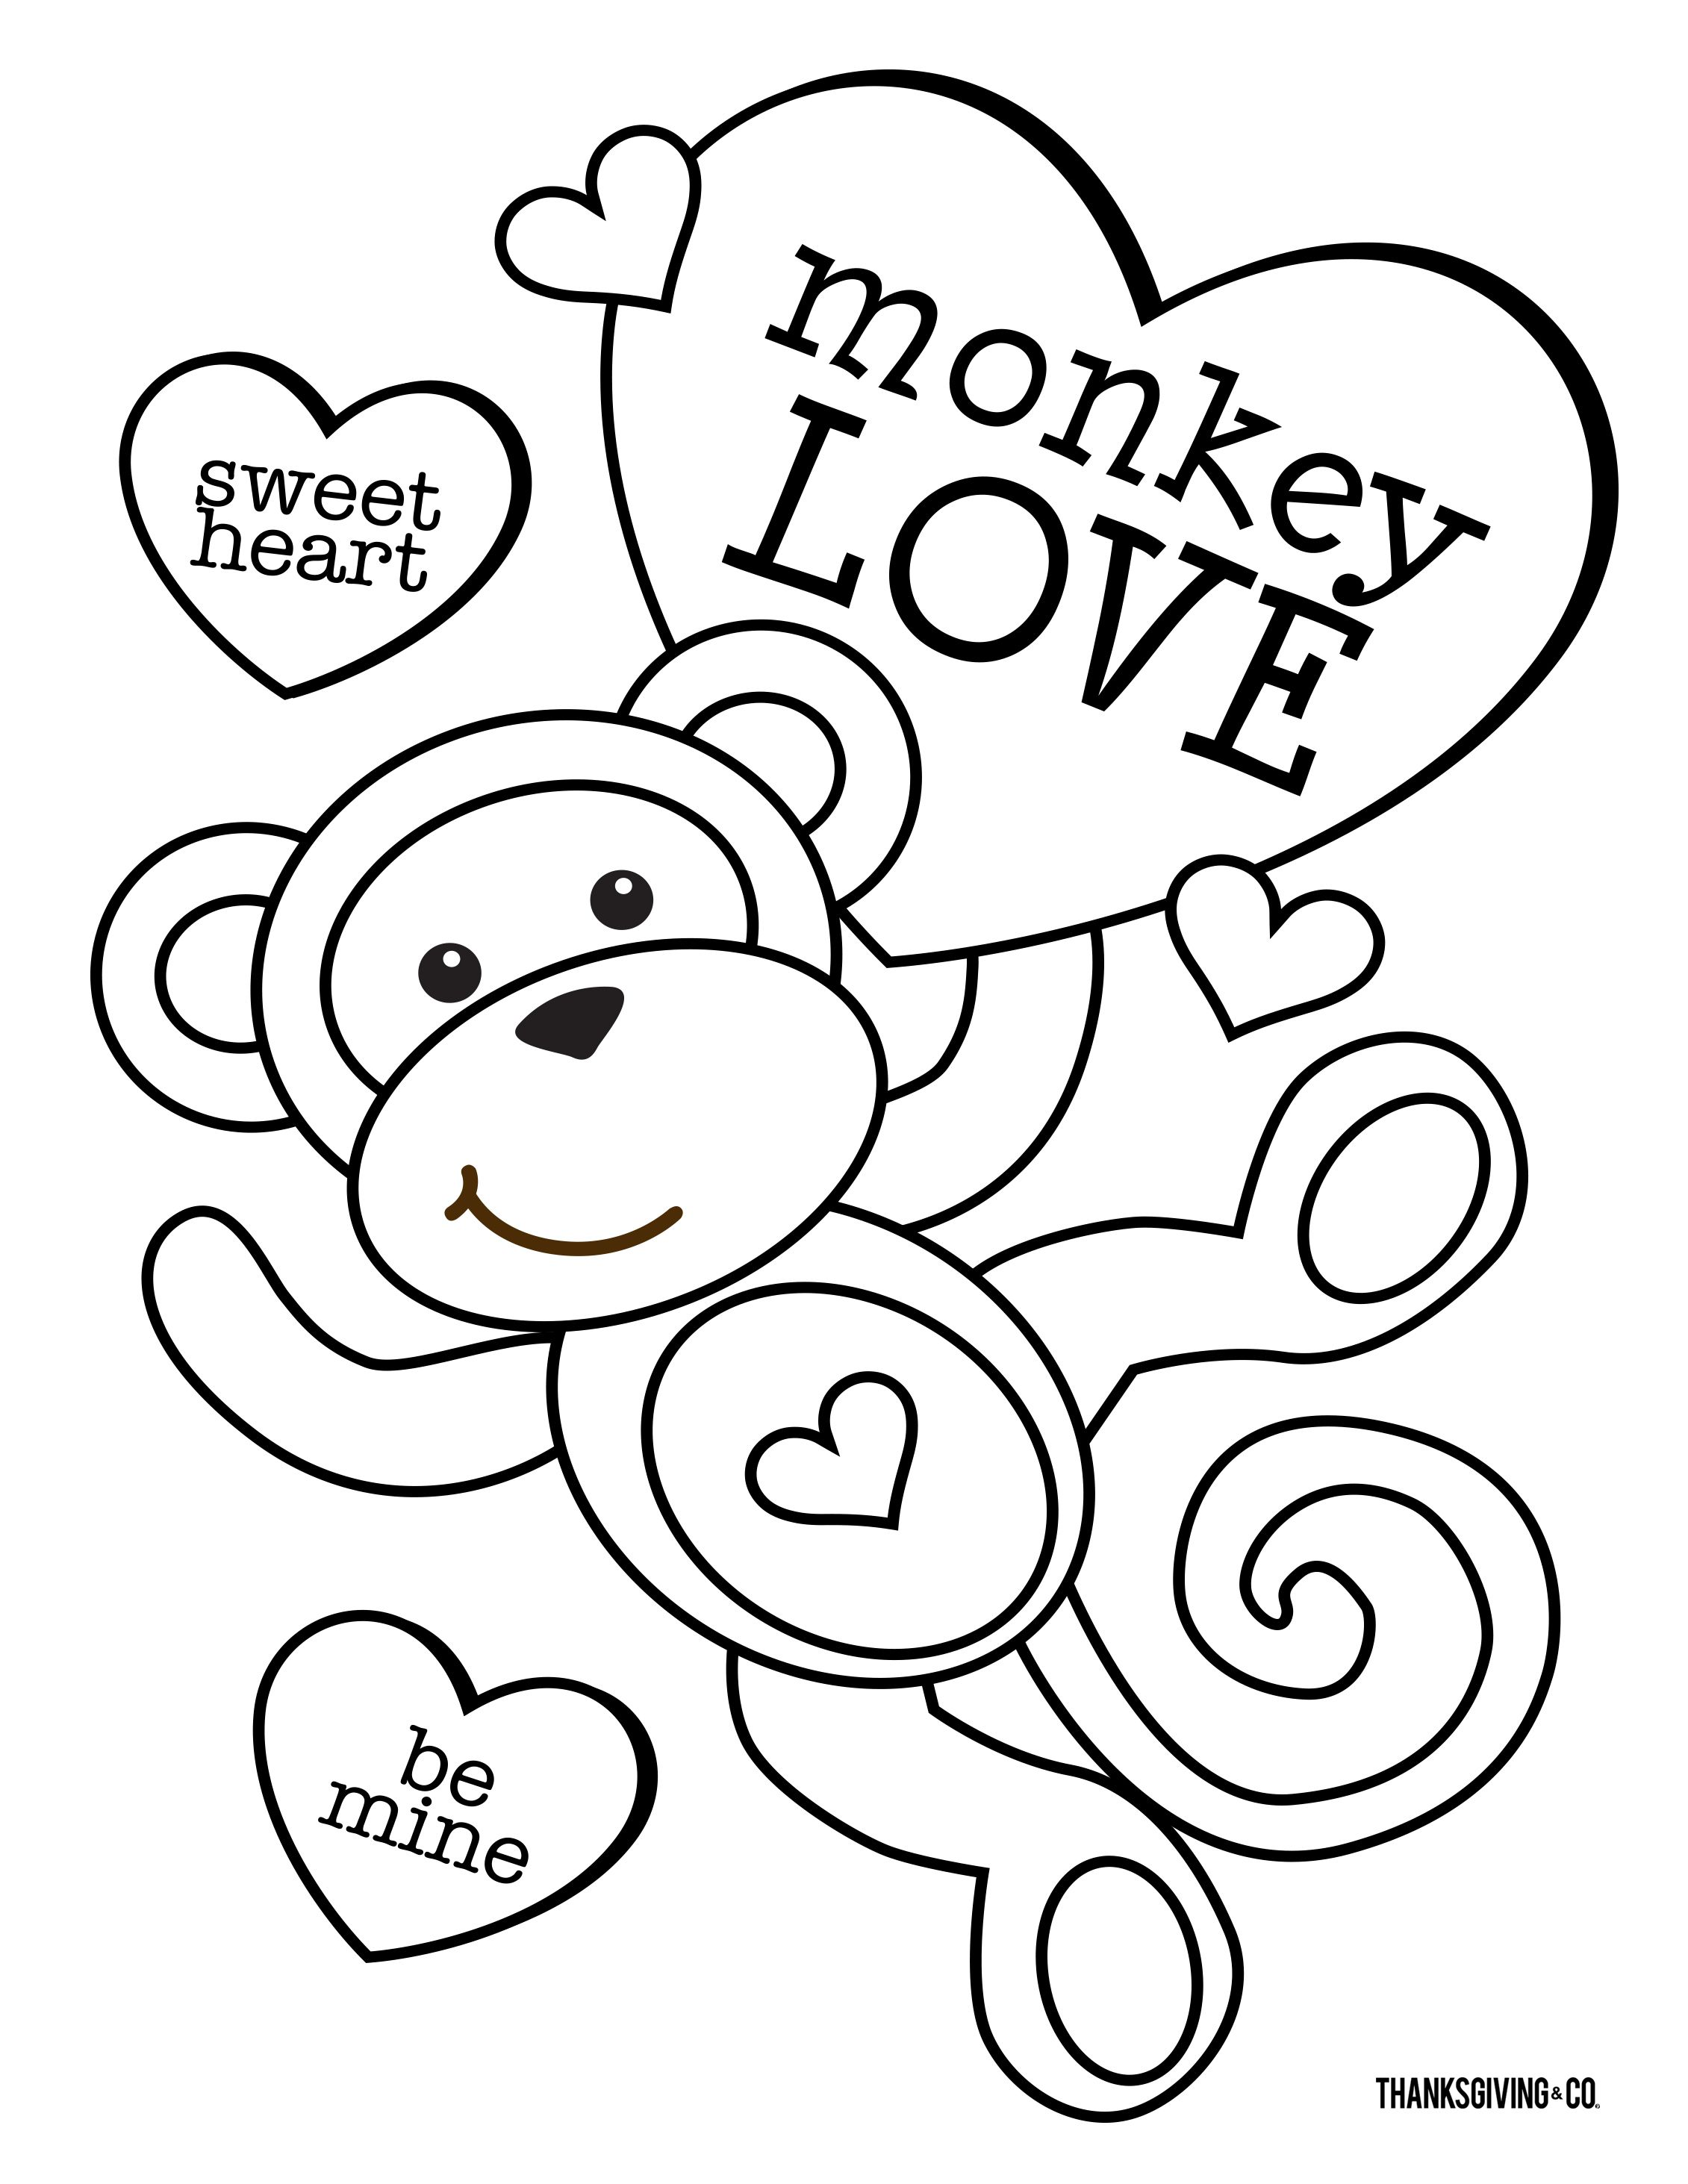 4 free Valentine's Day coloring pages for kids ...